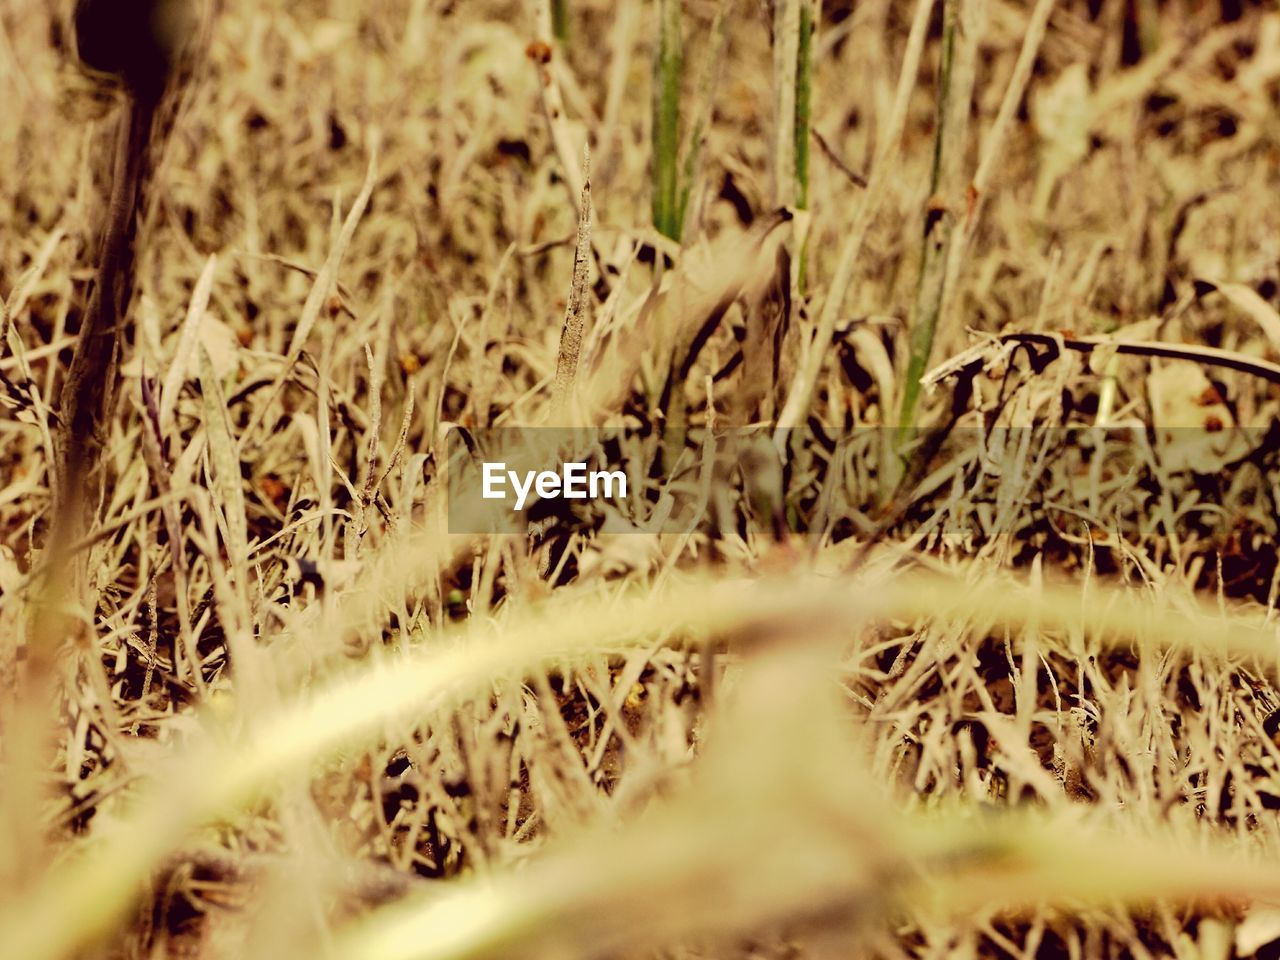 no people, selective focus, field, grass, nature, day, growth, outdoors, close-up